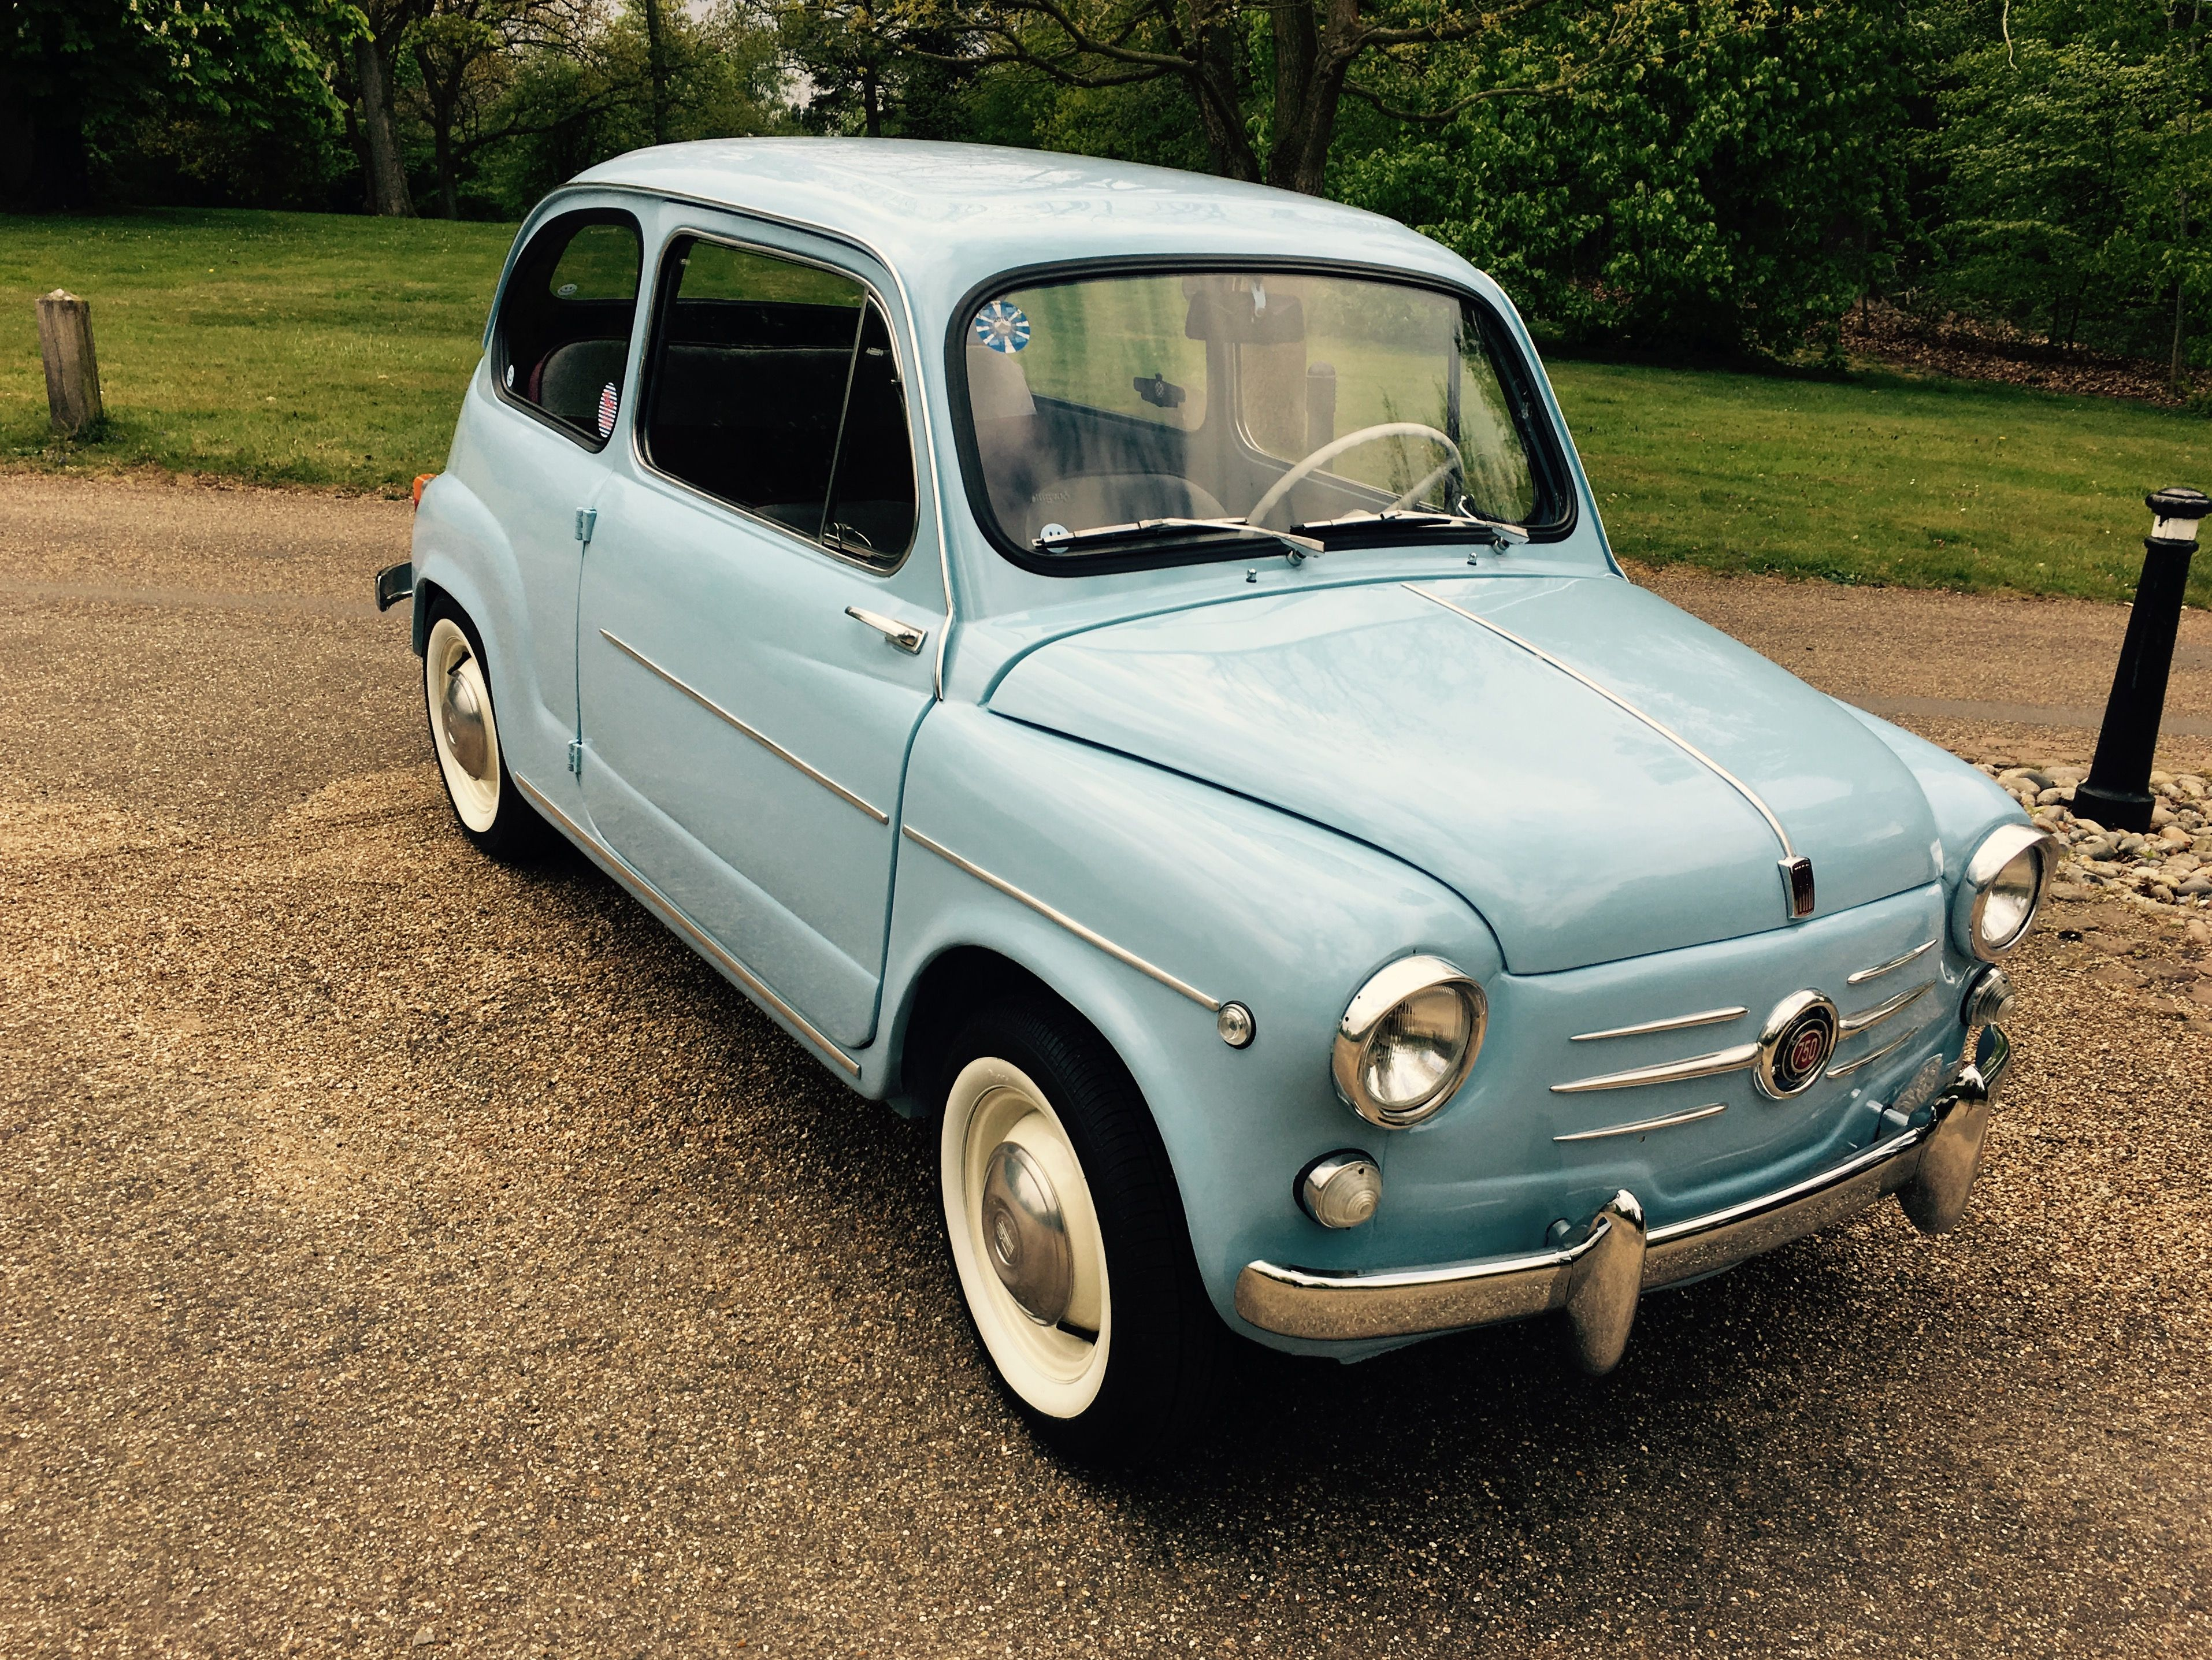 r sells mini jolly new record hemmings beach setting car blog major for daily sale price fiat